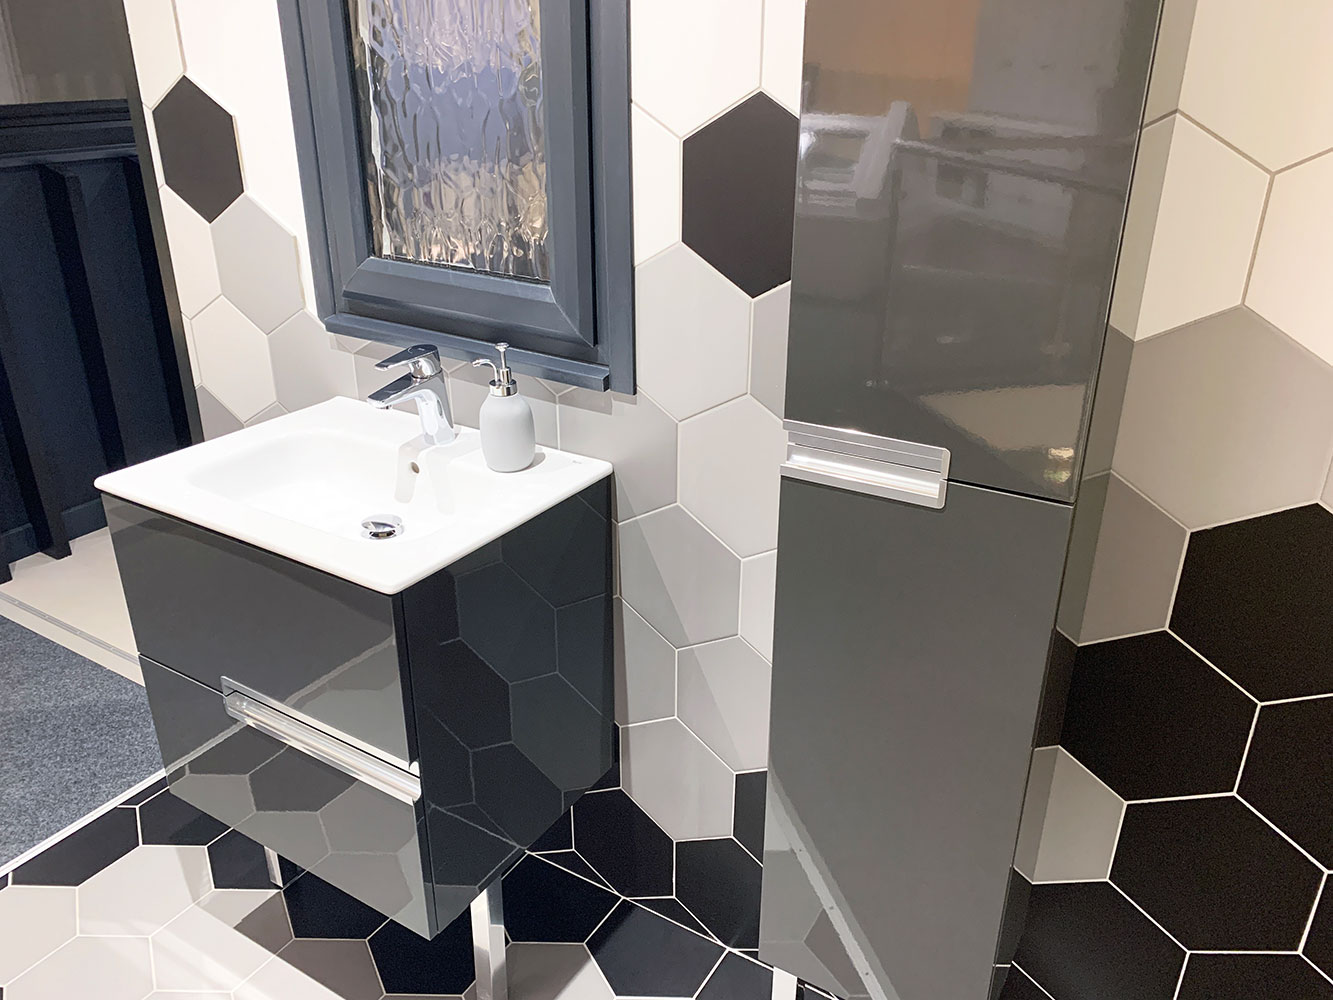 Thistle Bathroom Showroom Aberdeen: Bathroom Gallery 2, Photo 2